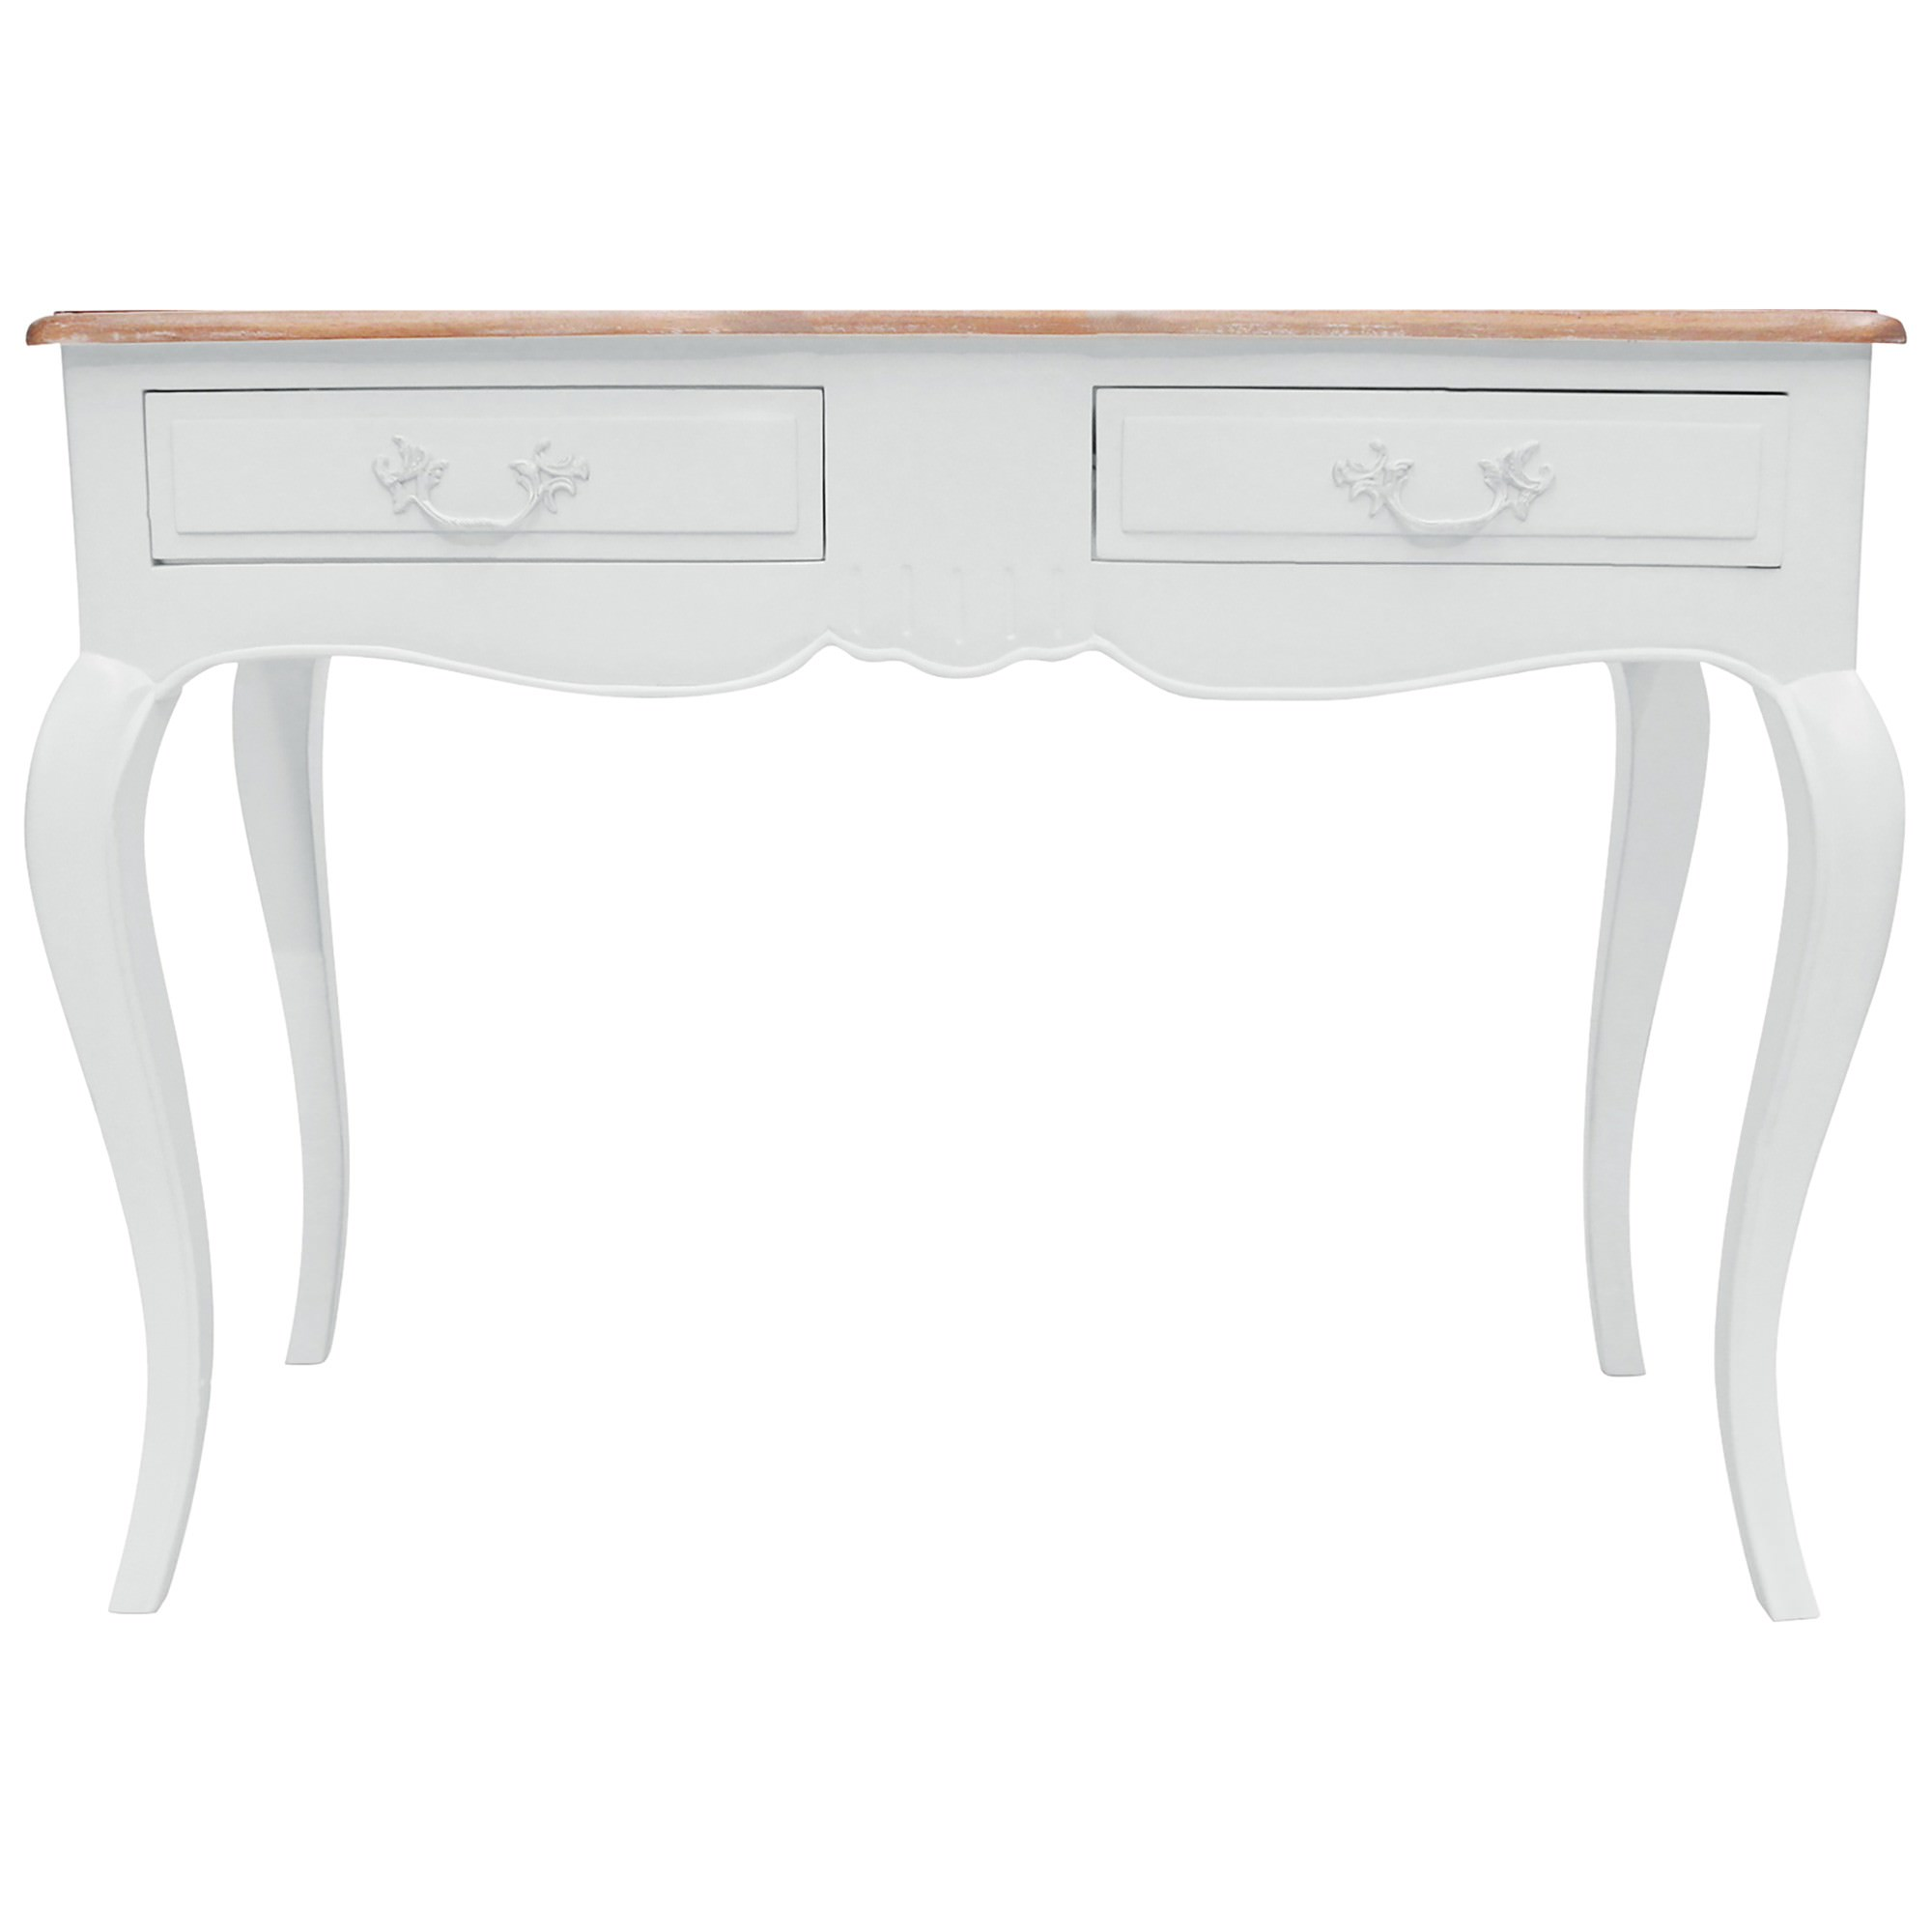 Chantillac Hand Crafted Mahogany 2 Drawer Hall Table, White